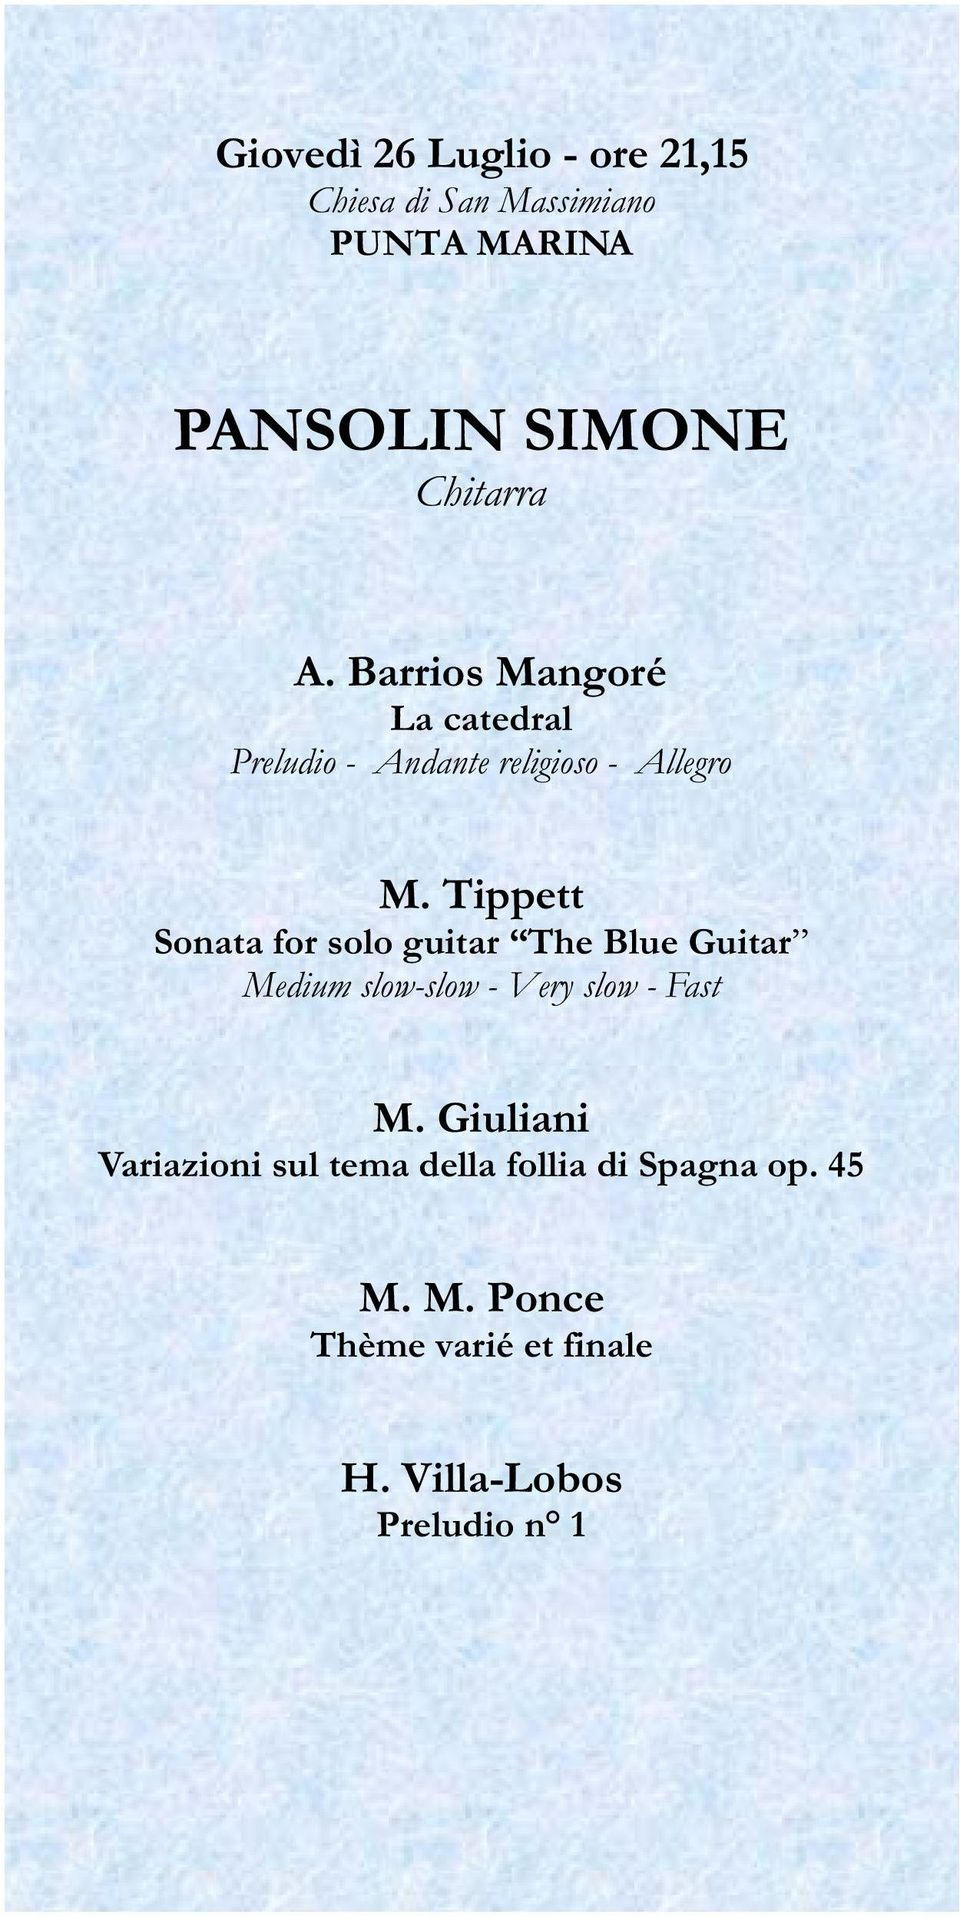 Tippett Sonata for solo guitar The Blue Guitar Medium slow-slow - Very slow - Fast M.